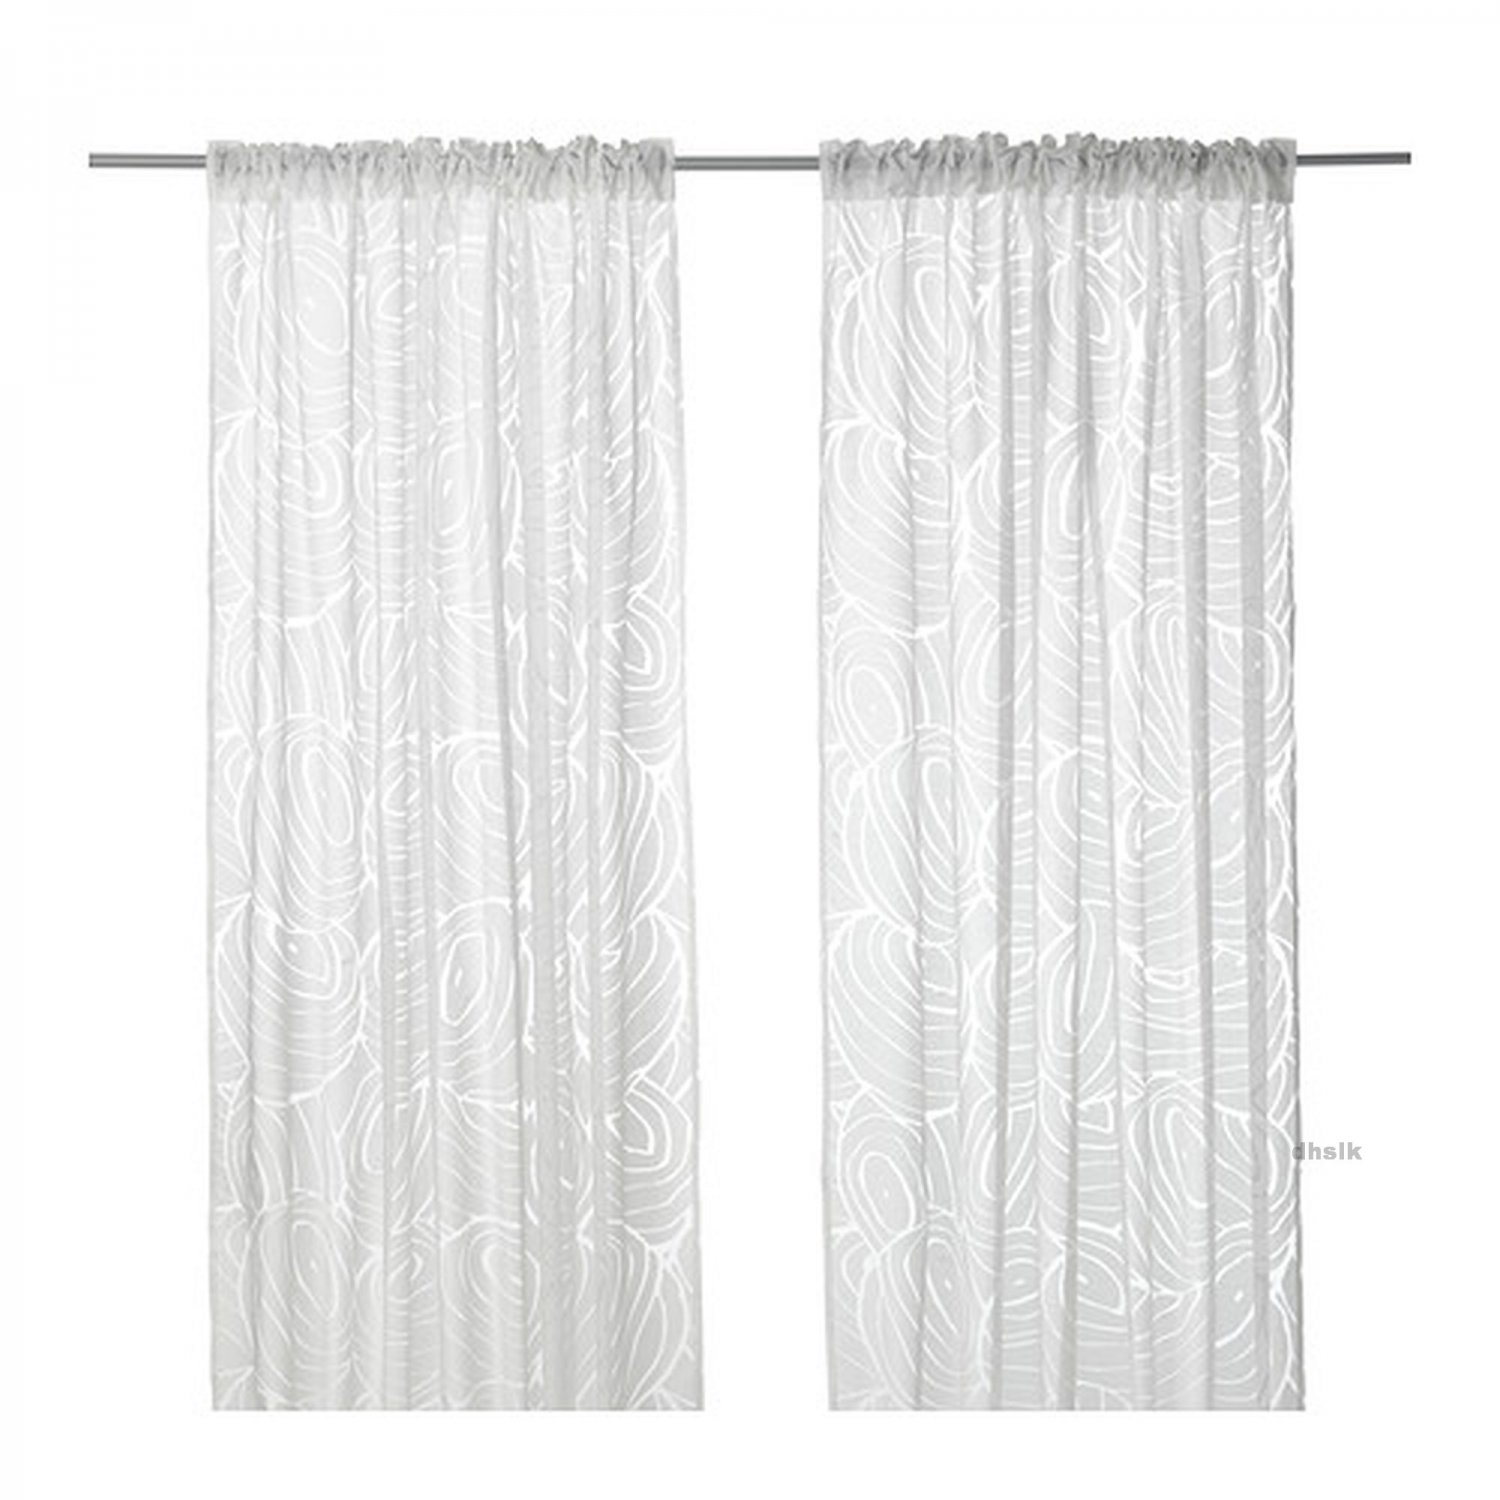 Ikea nordis curtains drapes white on white nature inspired for White curtains ikea